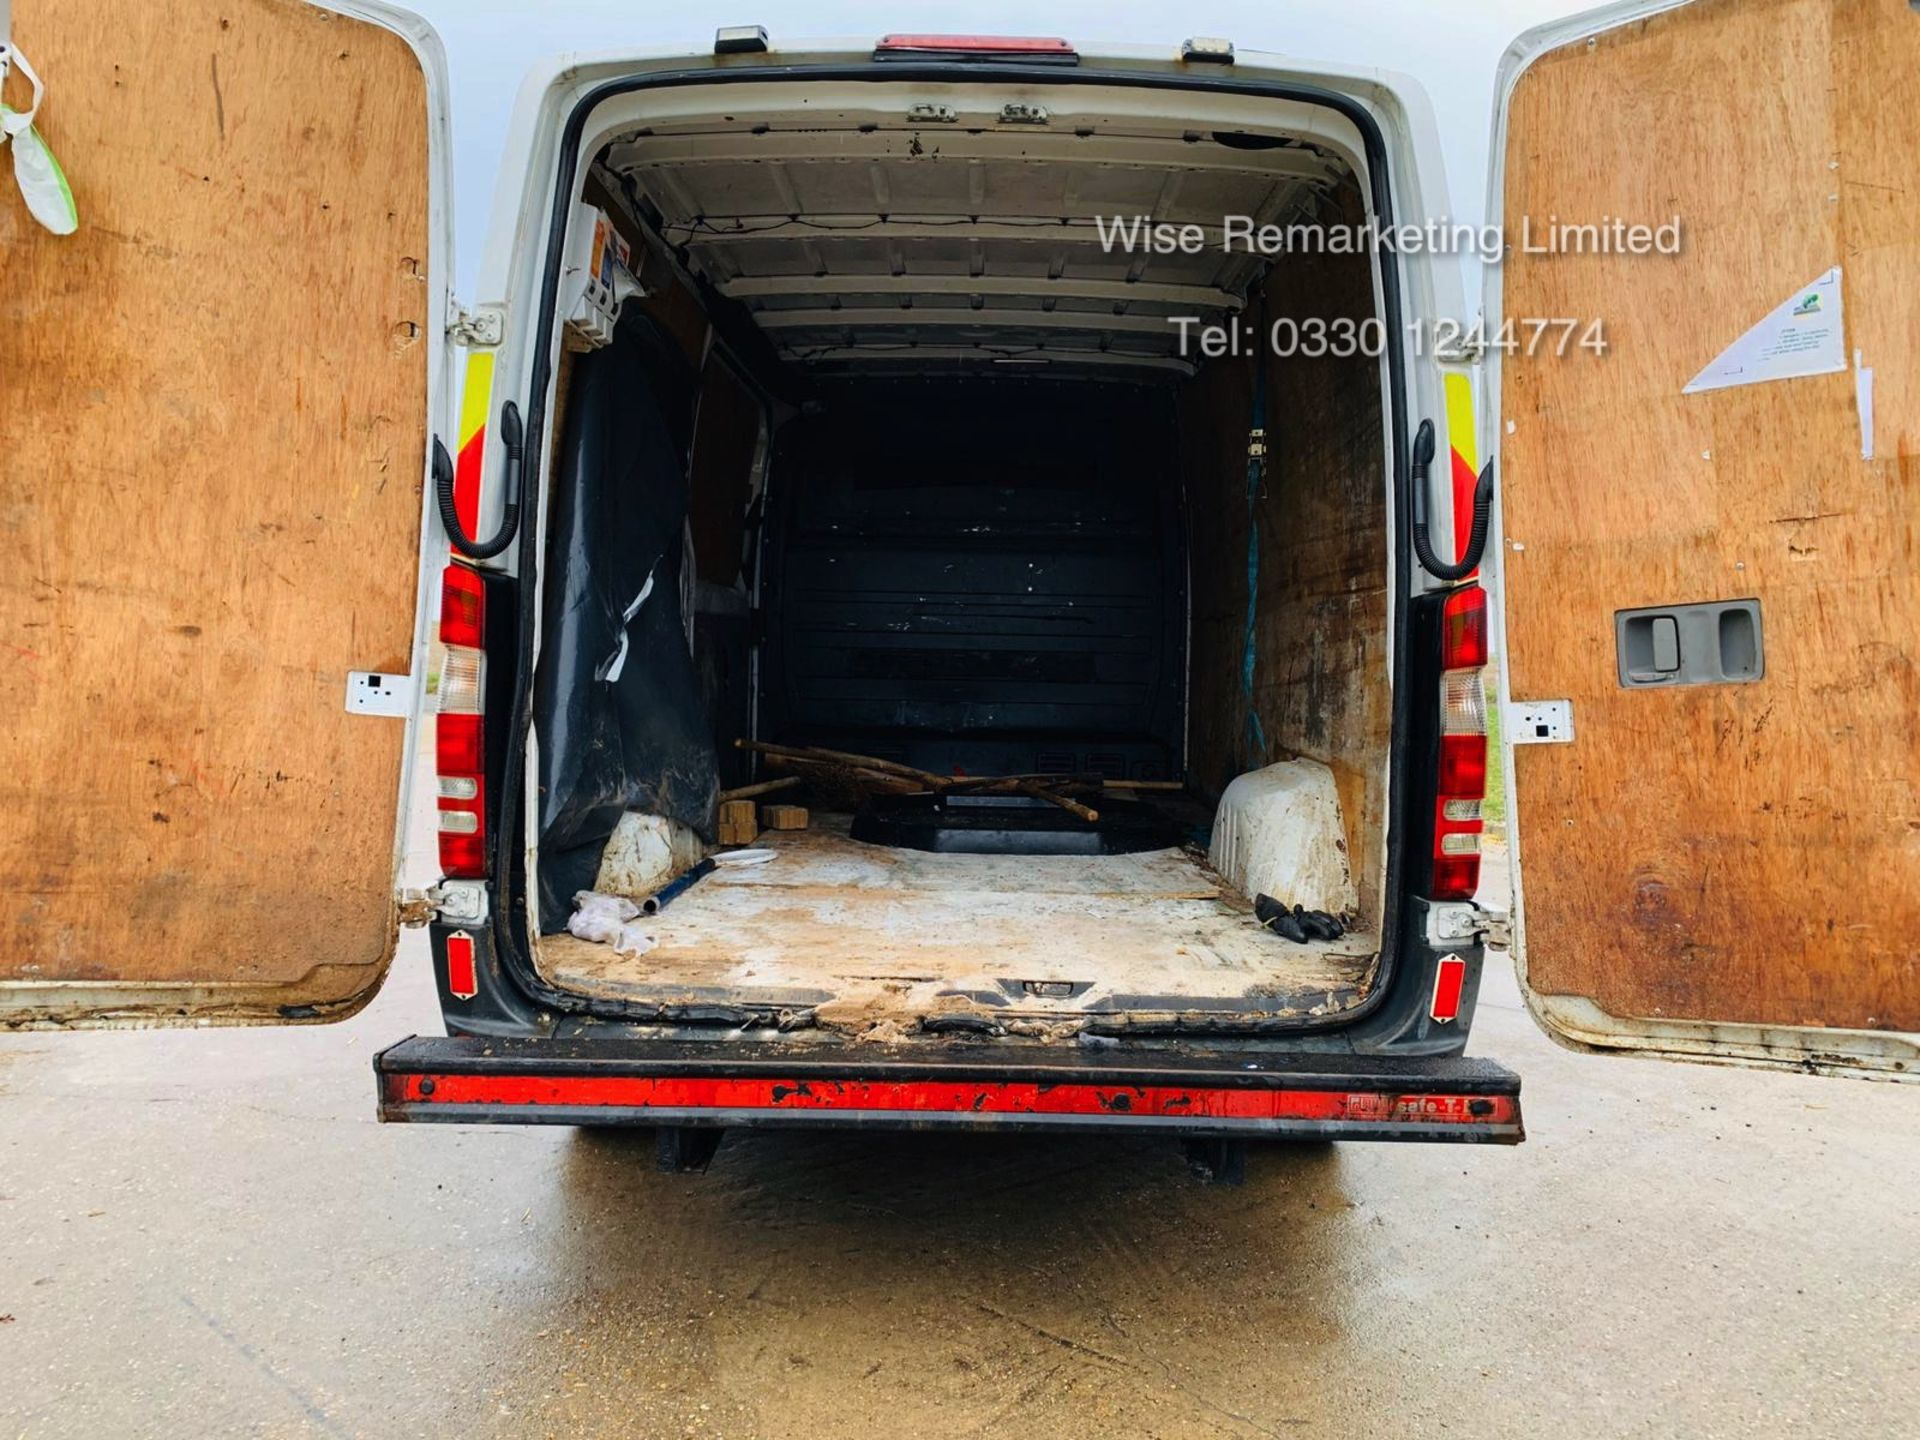 Lot 33 - Reserve Met Mercedes Sprinter 313 CDI 2.1 TD *Automatic Triptronic Gearbox* - 2011 Model - Ply Lined